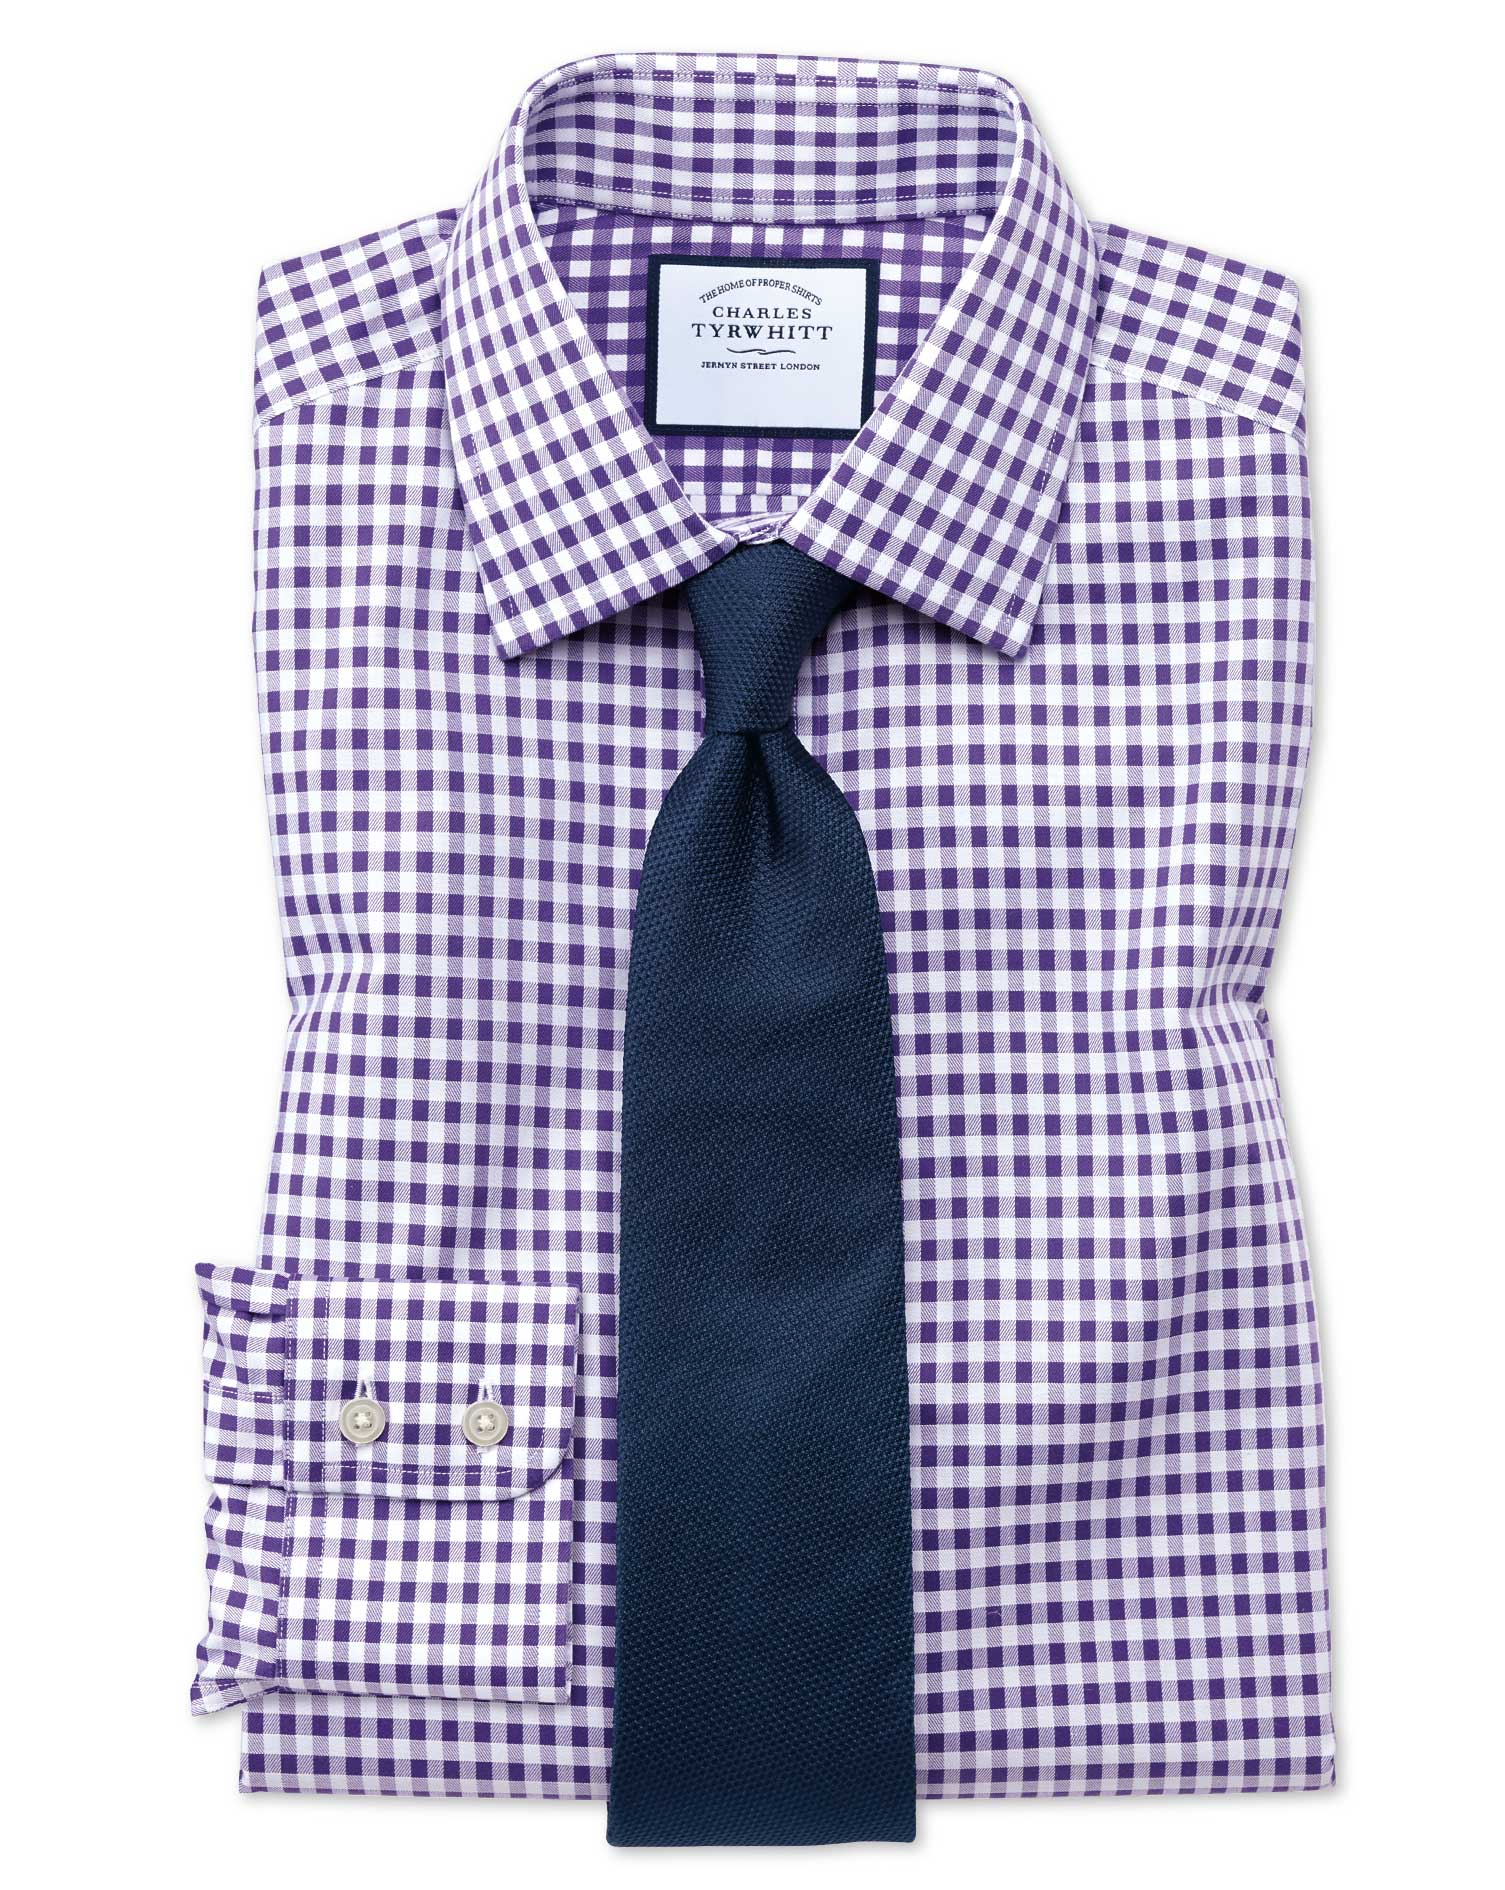 Extra Slim Fit Non-Iron Gingham Purple Cotton Formal Shirt Single Cuff Size 15.5/33 by Charles Tyrwh